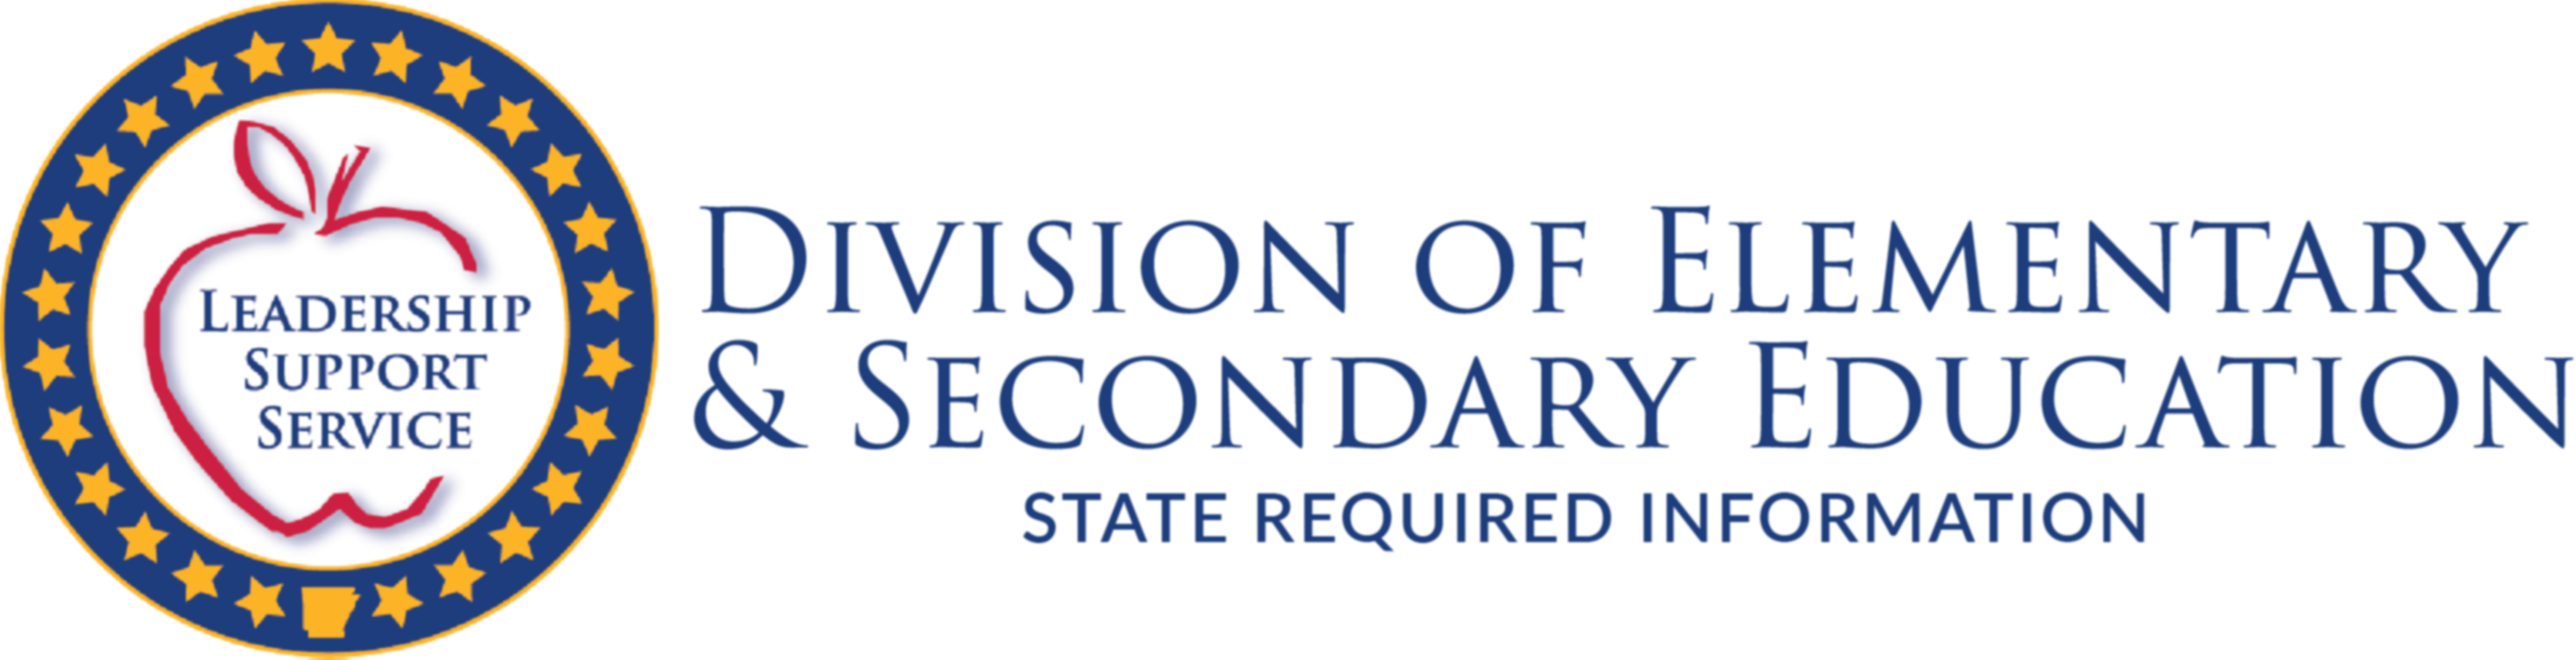 Division of Elementary and Secondary Information